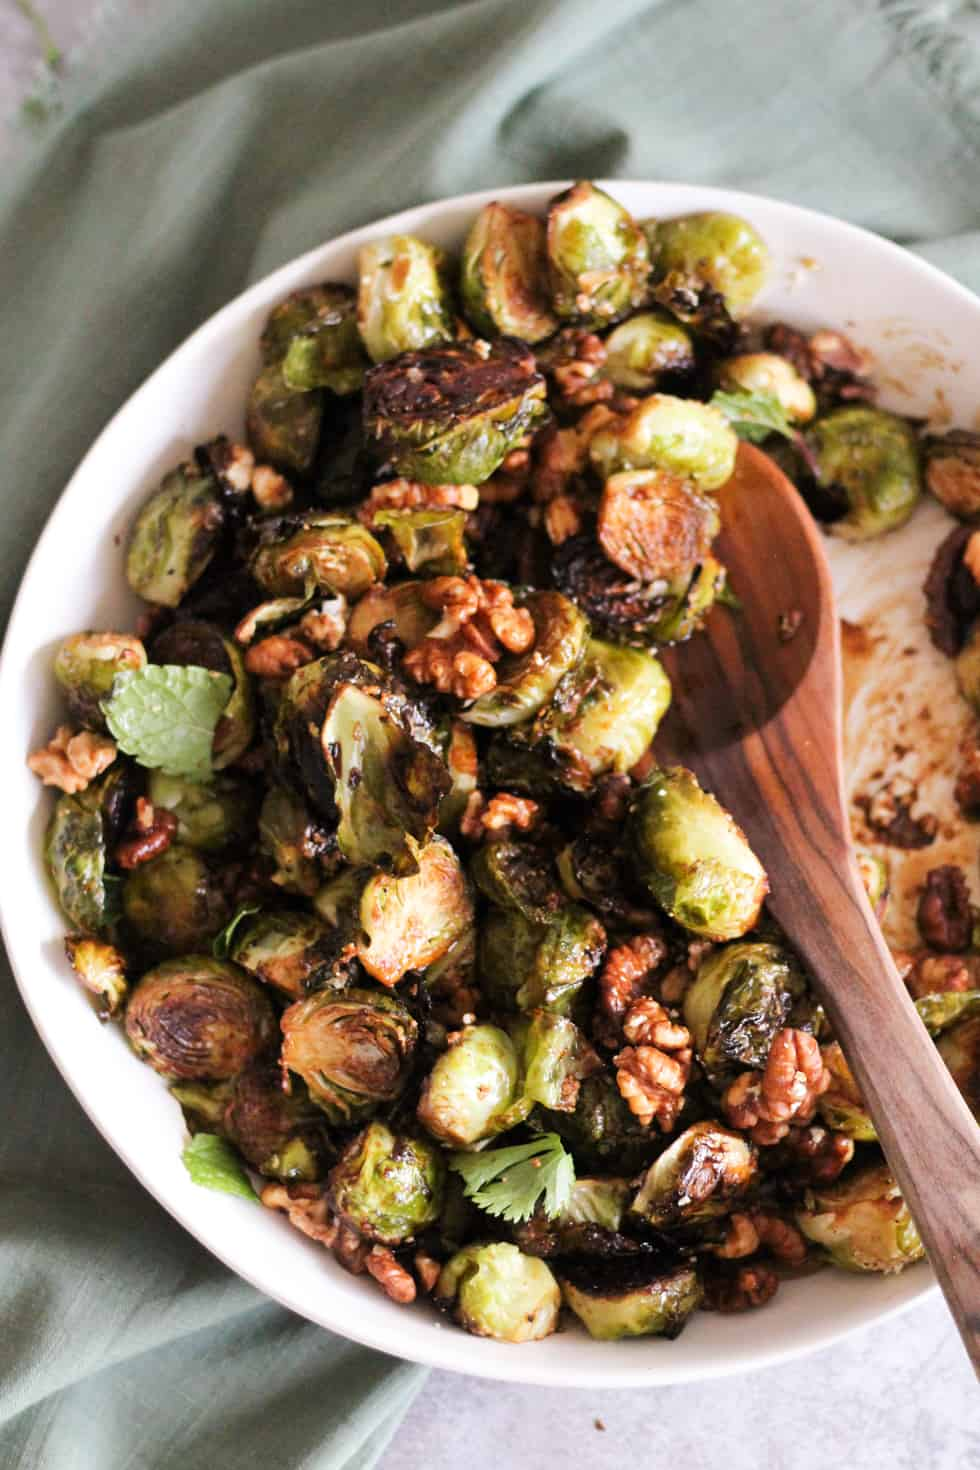 Crispy Roasted Brussels Sprouts With Goat Cheese And Walnuts